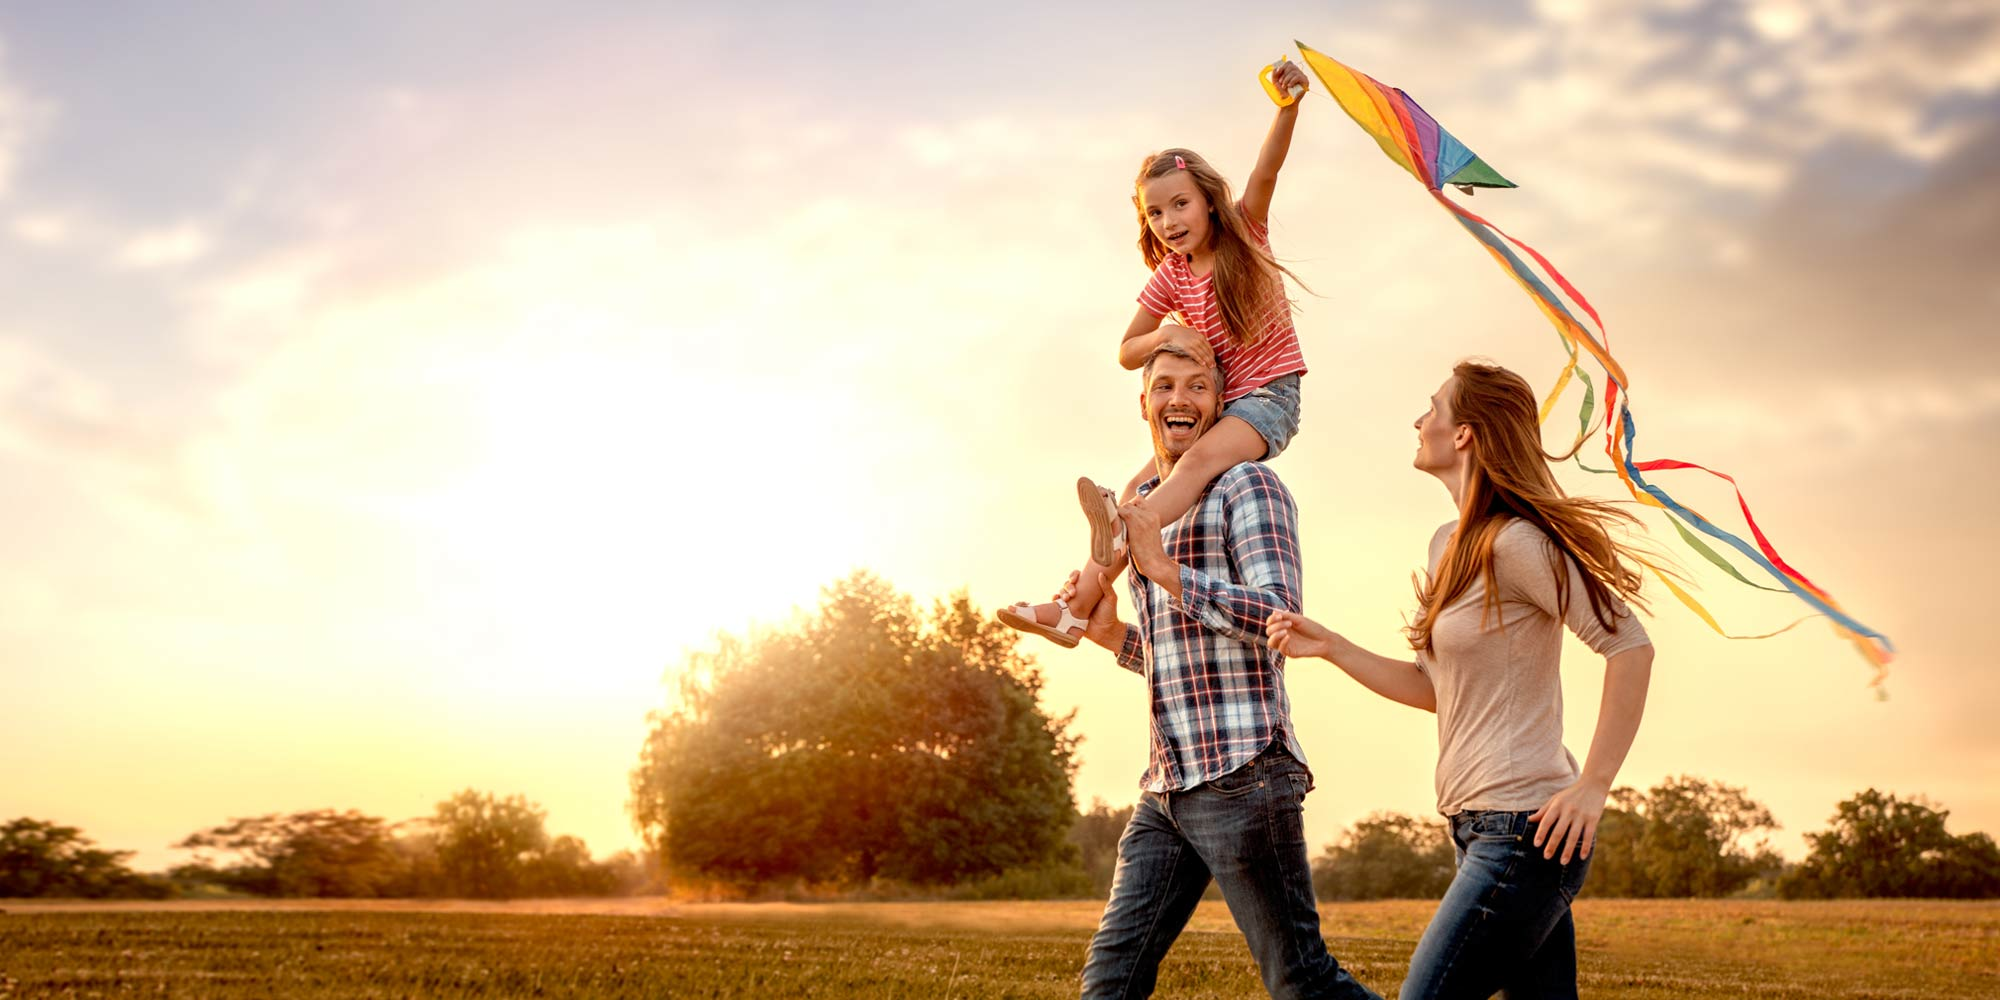 family-kid-with-kite